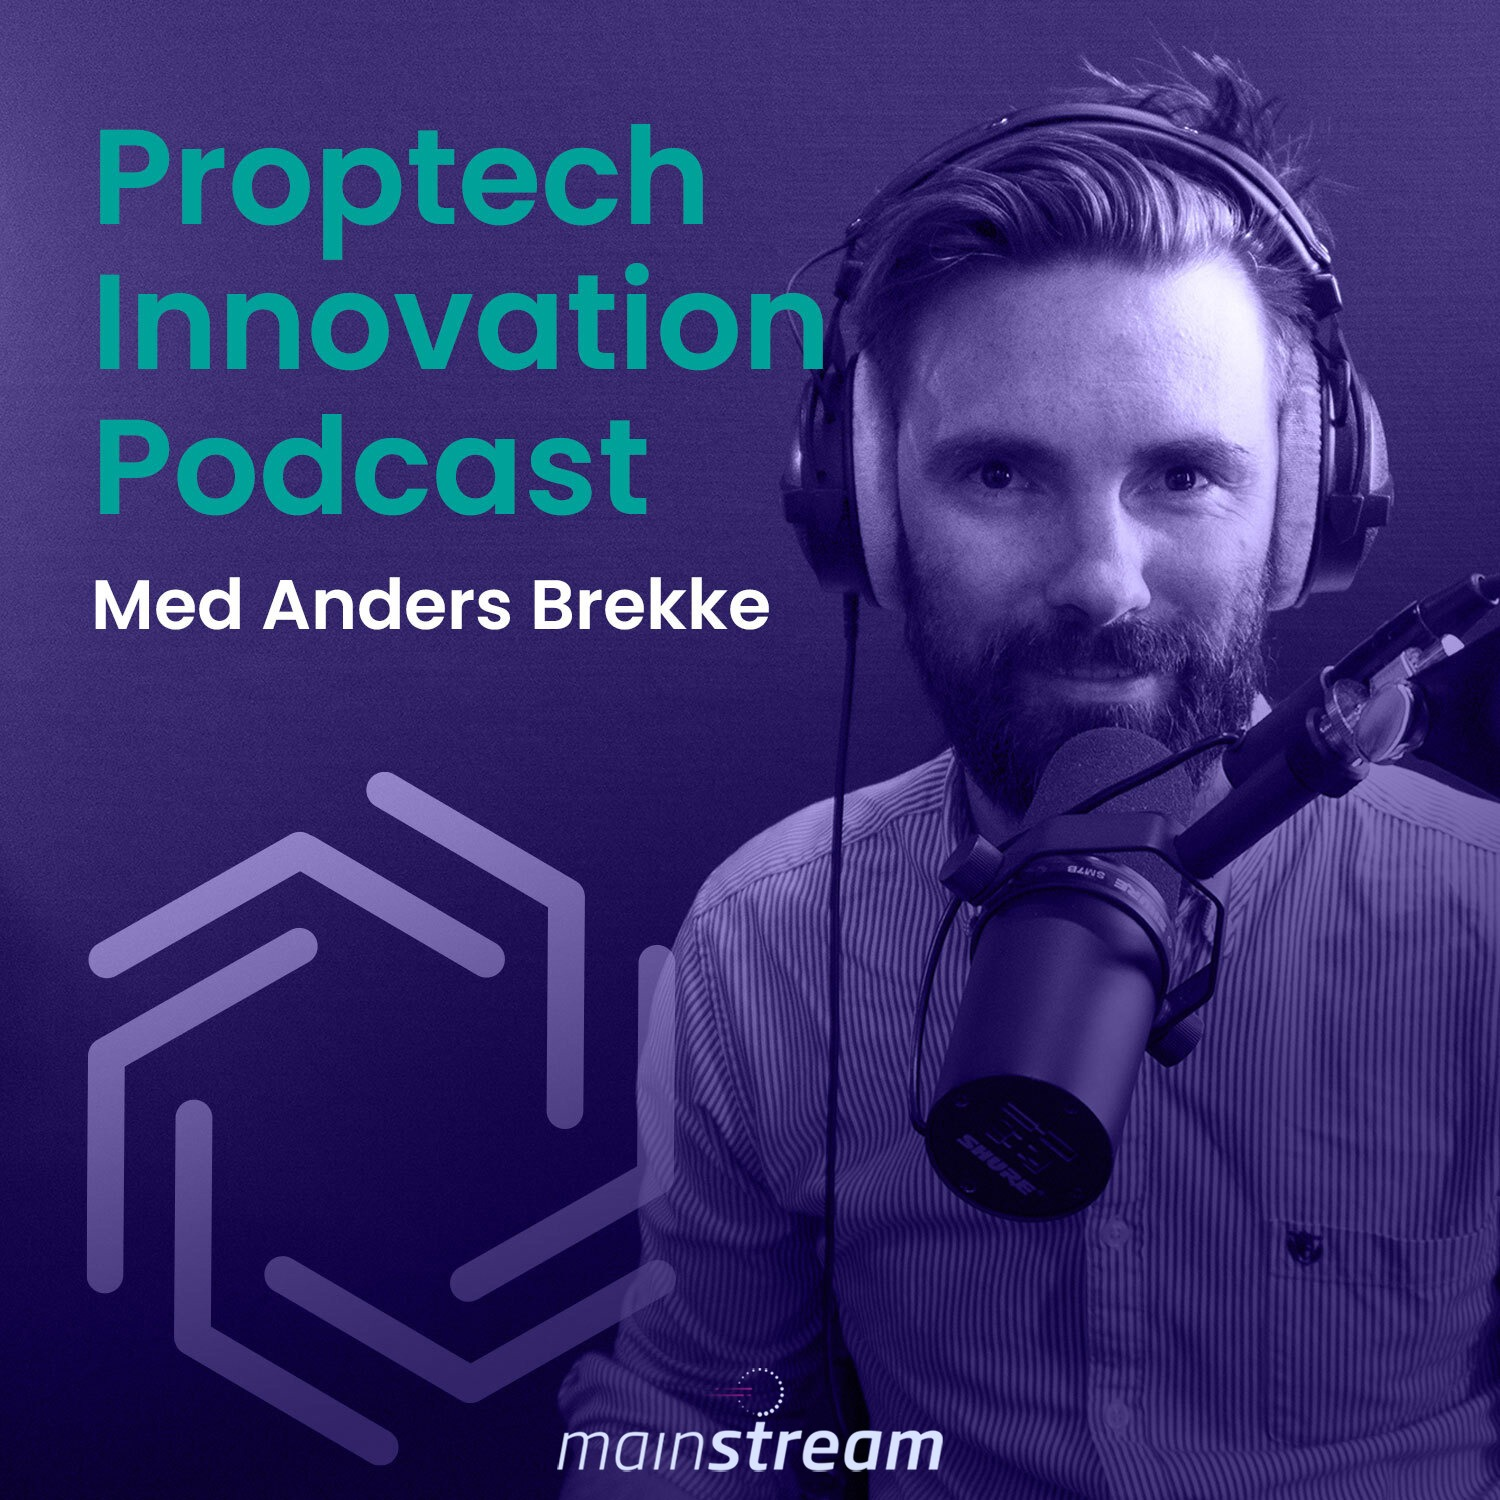 Proptech Innovation Podcast